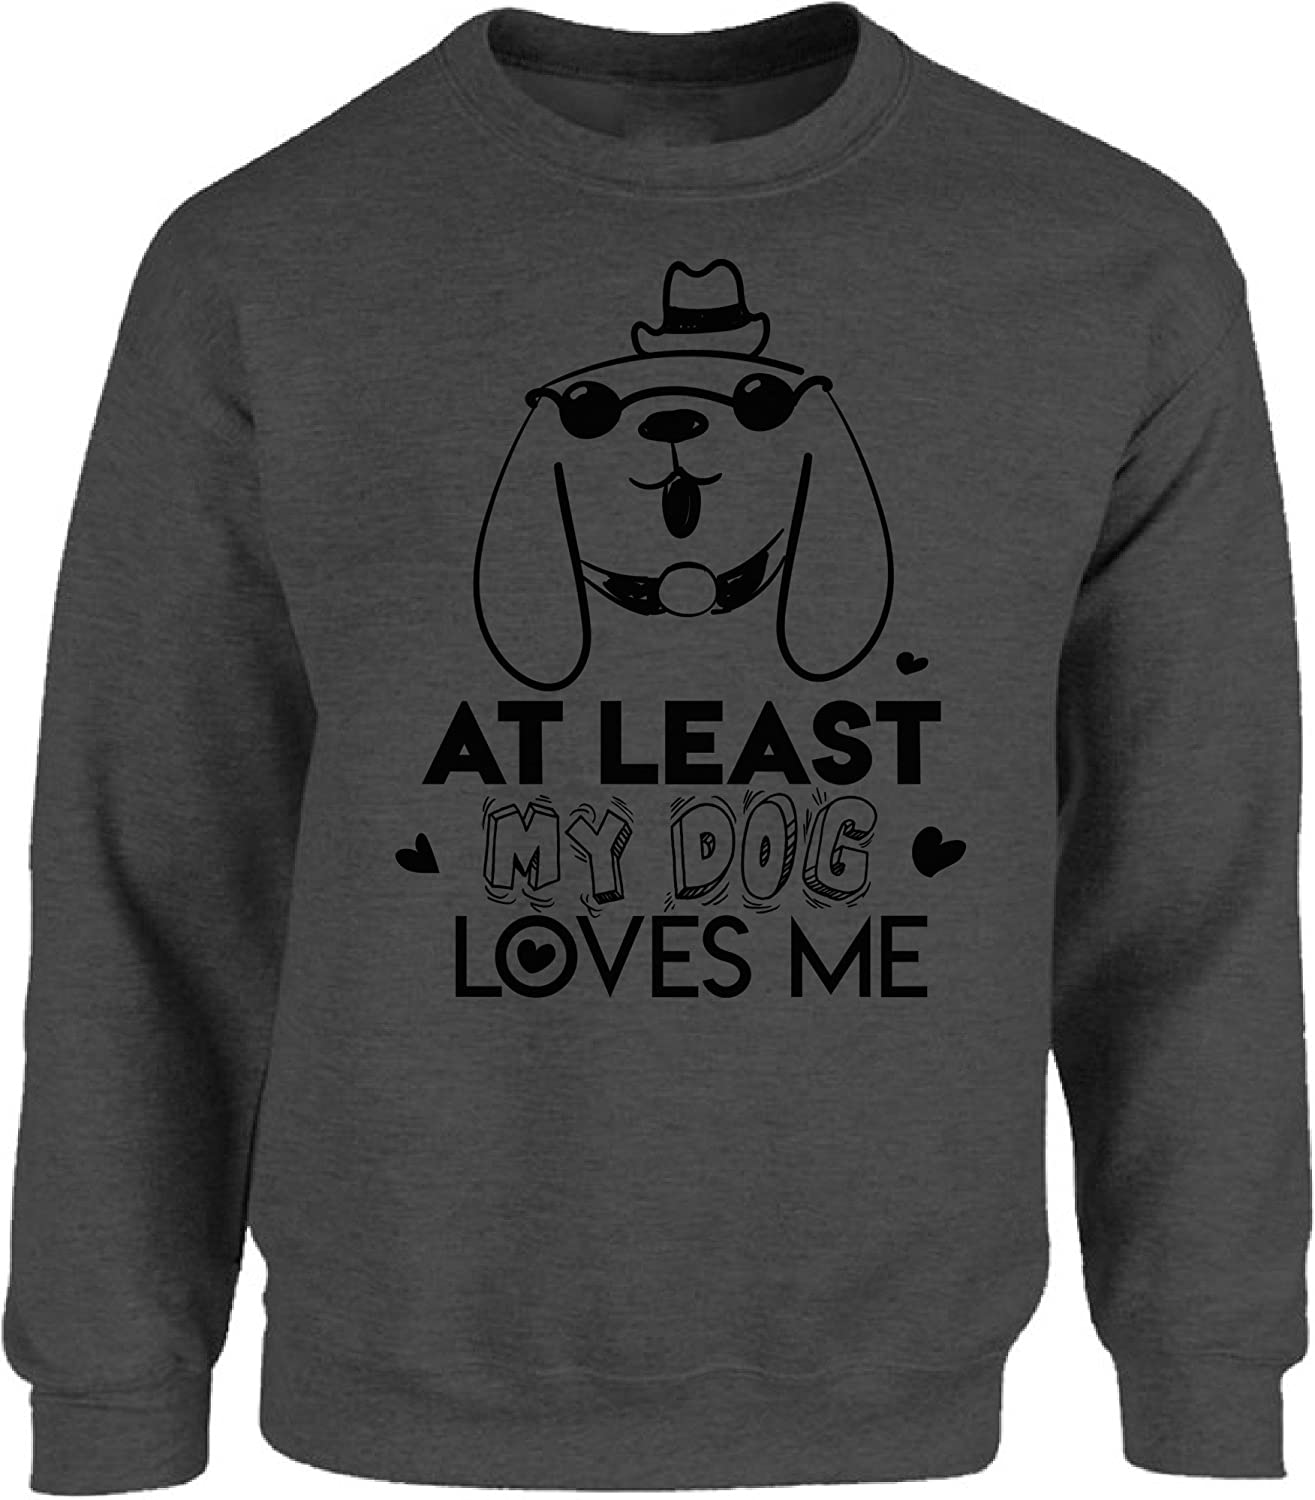 Men/'s At Least My Dog Loves Me Shirts Dog Valentine Shirt Gifts for Dog Lovers